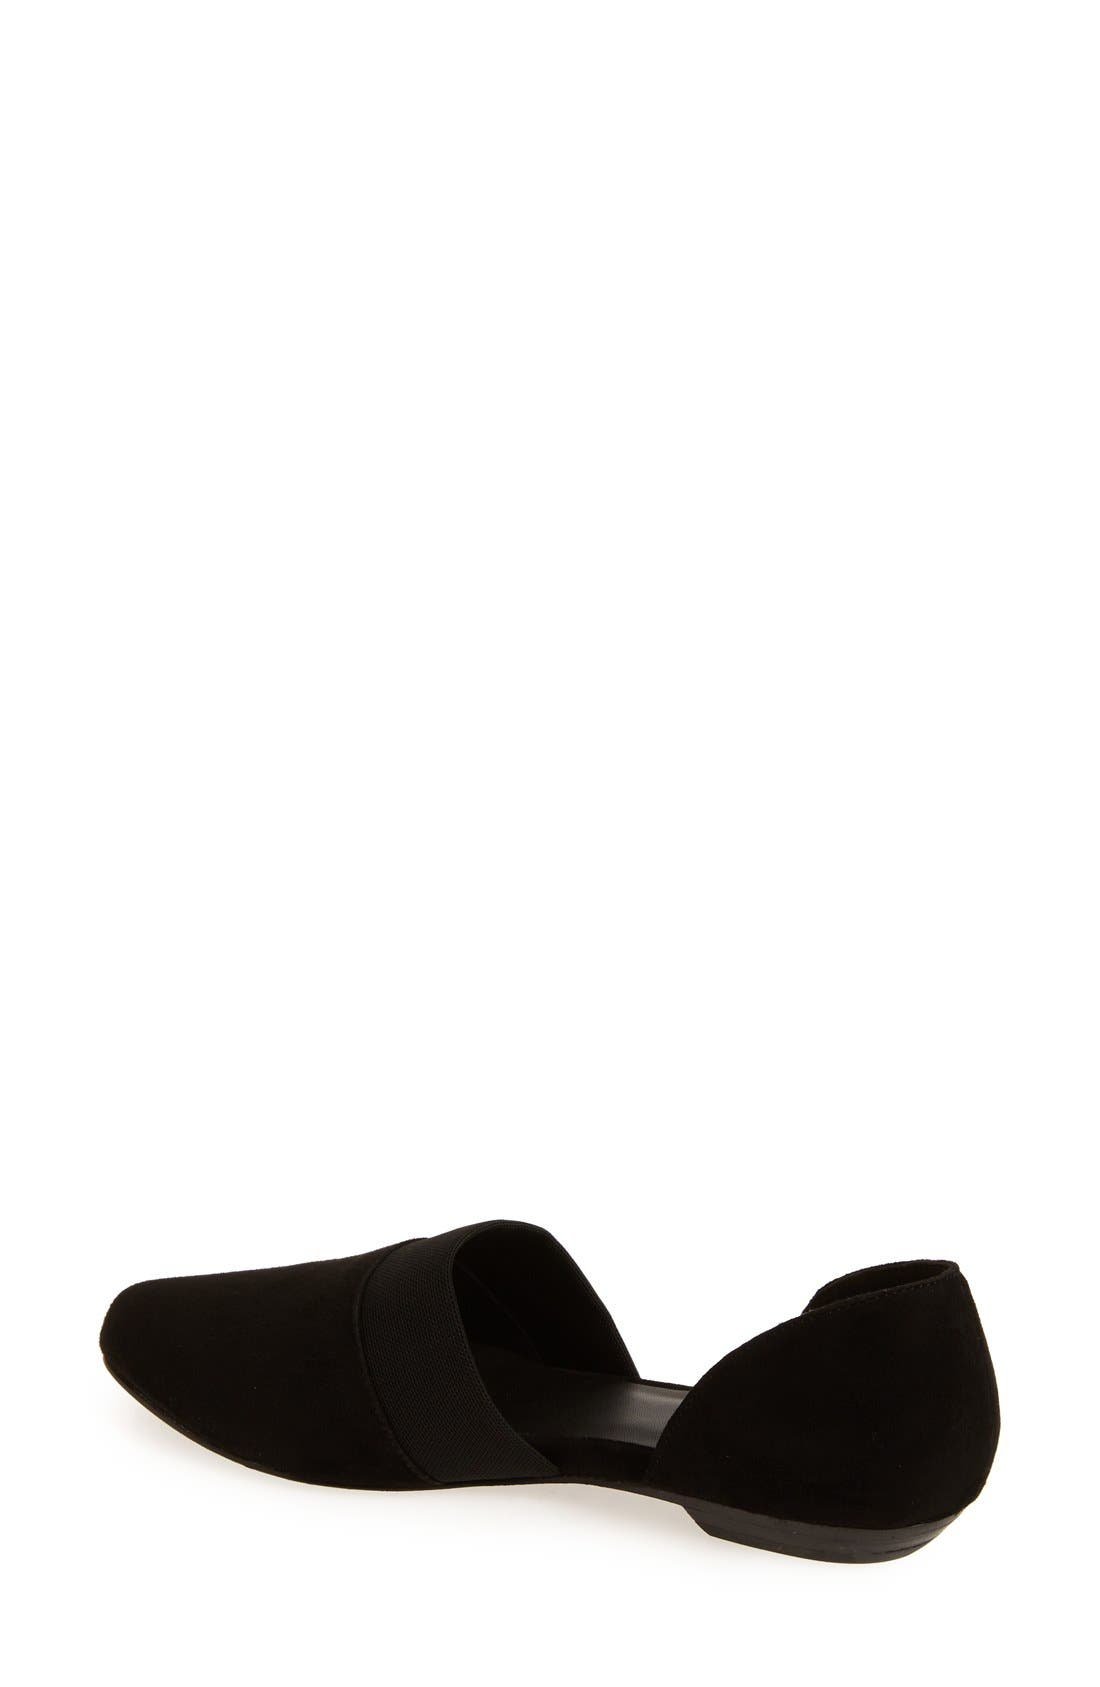 EILEEN FISHER, Flute Pointy Toe Flat, Alternate thumbnail 2, color, BLACK SUEDE